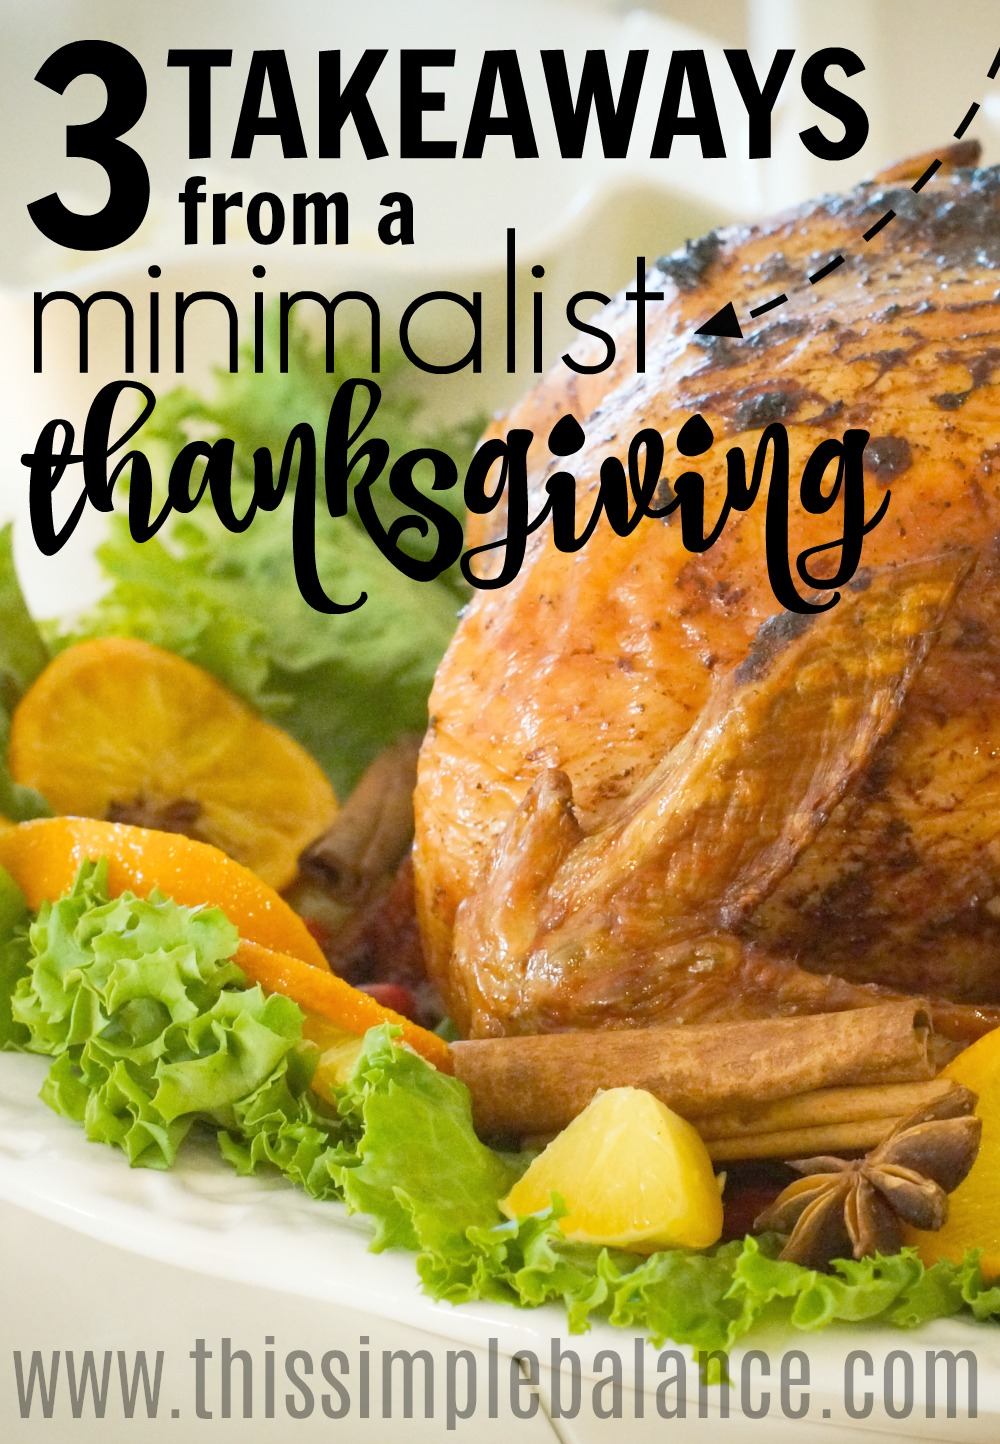 Once you adopt a minimalist lifestyle, it changes how you look at everything in your life, including how you celebrate holidays. Our minimalist Thanksgiving this year was pretty much perfect. These three major takeaways might make you want to consider a minimalist Thanksgiving next year! #minimalist #Thanksgiving #minimalistholiday